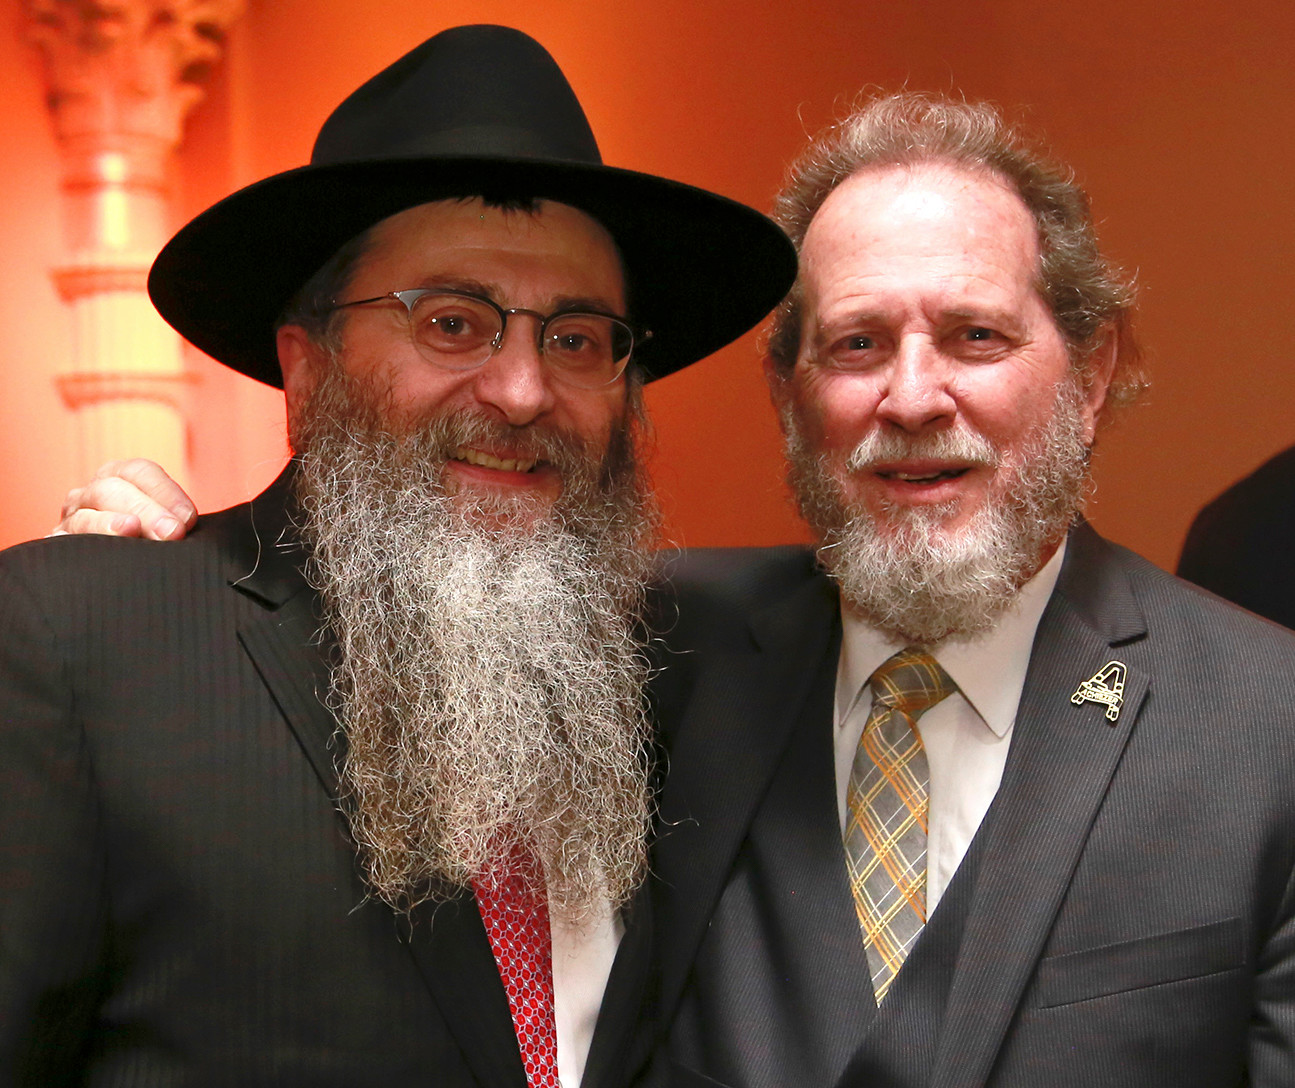 Rabbi Anchelle Perl of Chabad of Mineola and Achiezer board member Michael Krengel.